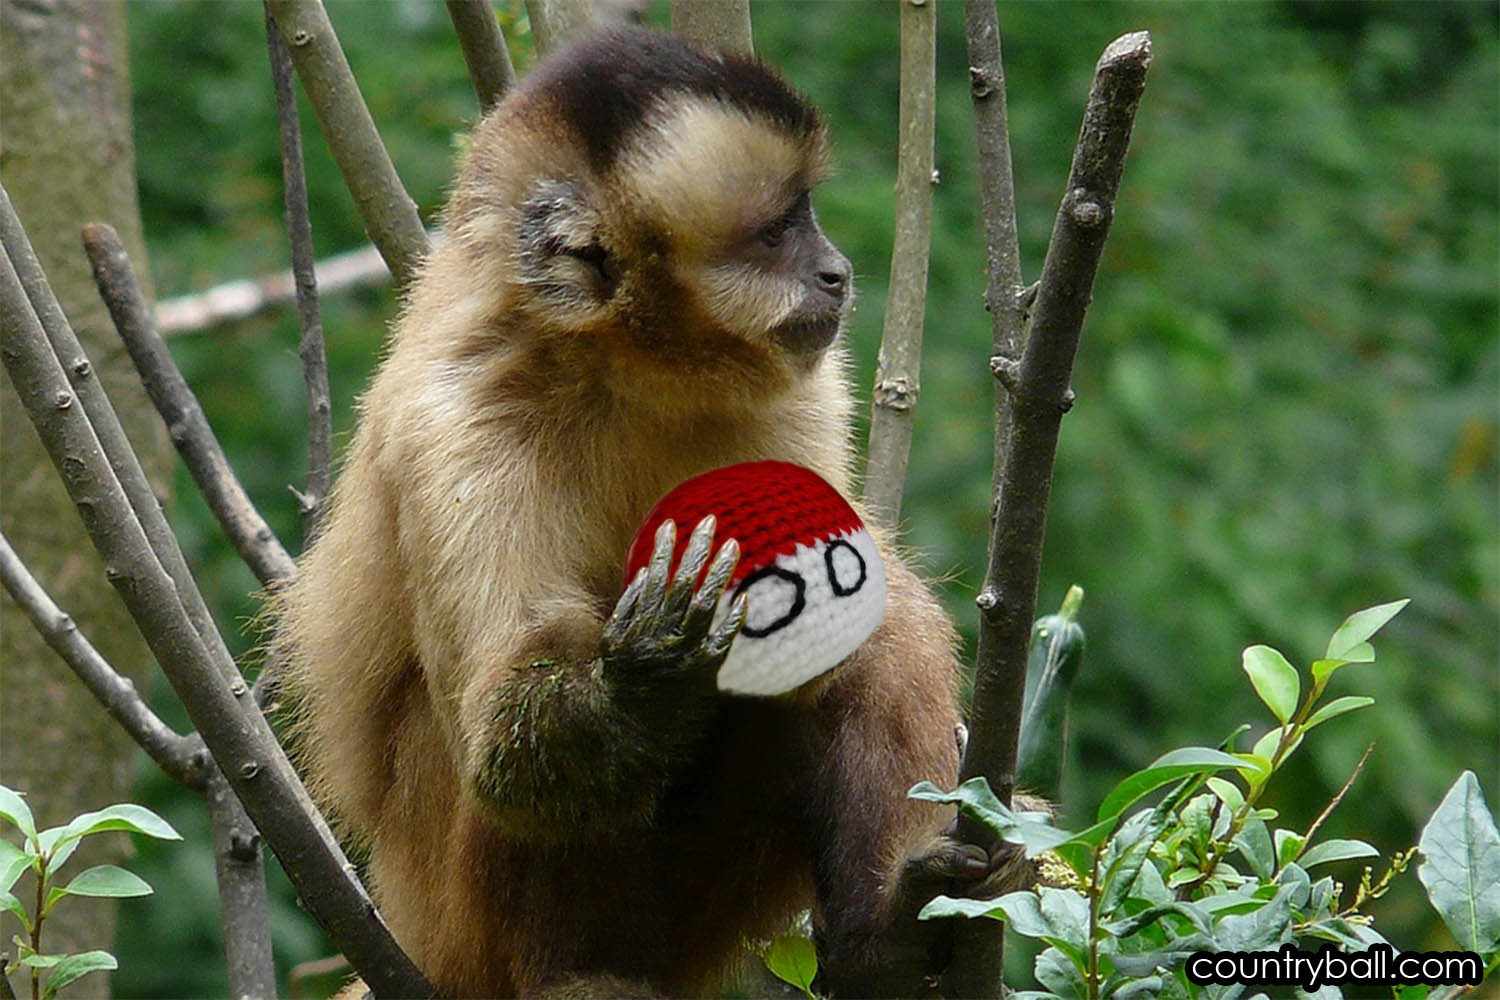 Indonesian Monkey with its favorite Indonesiaball